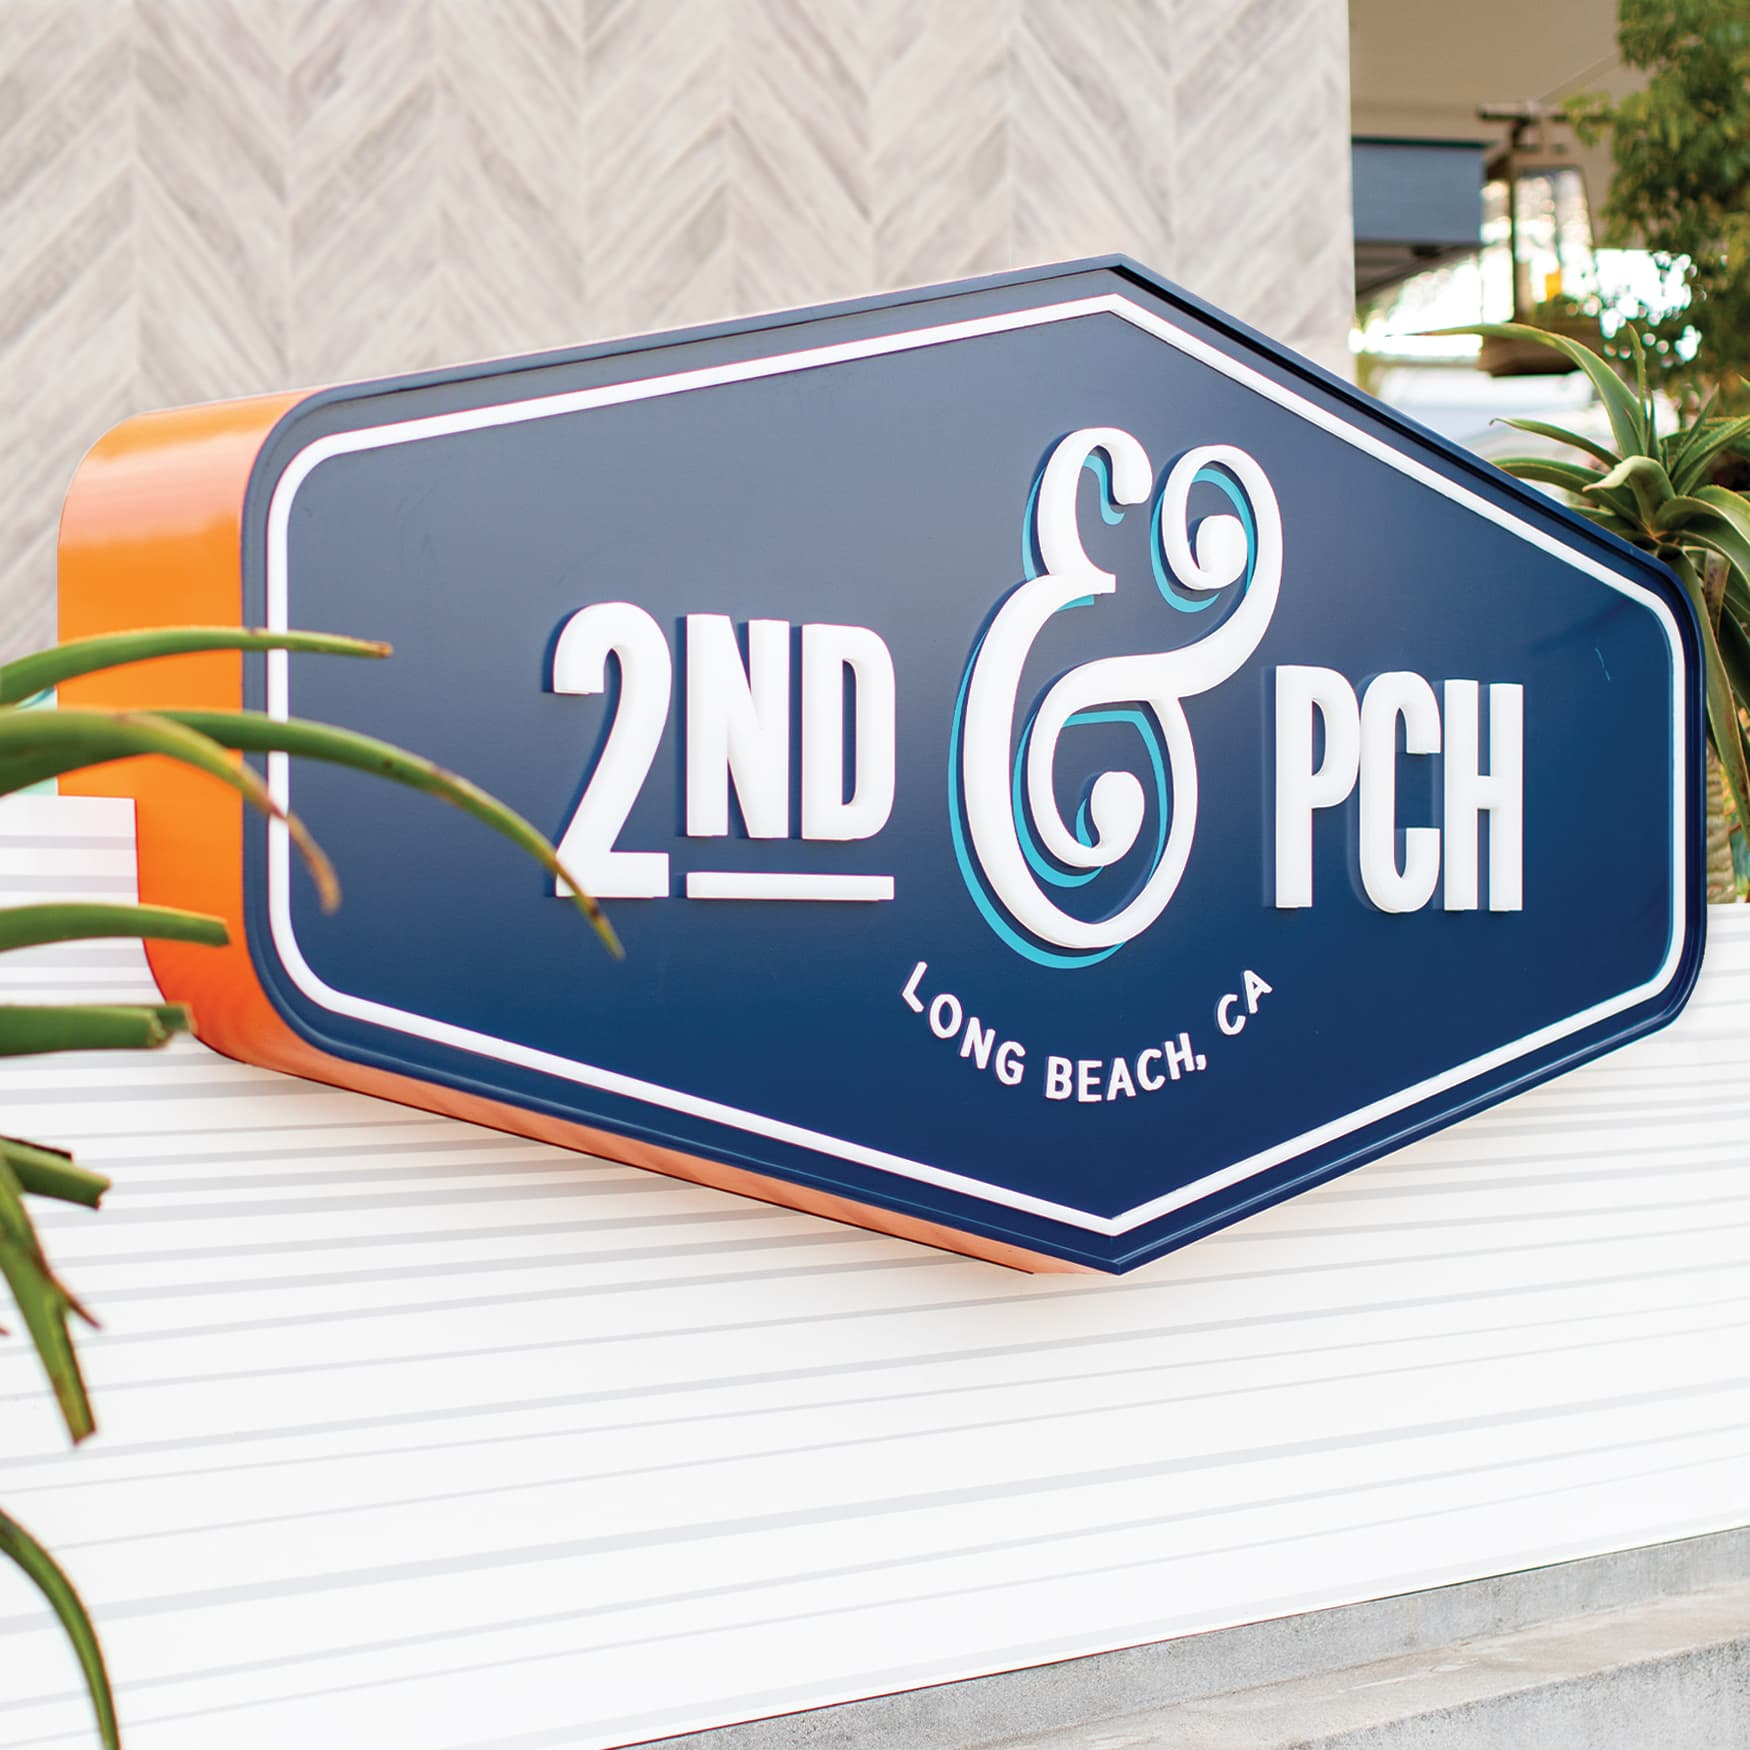 2nd & PCH blue and orange identity signage in Long Beach, California